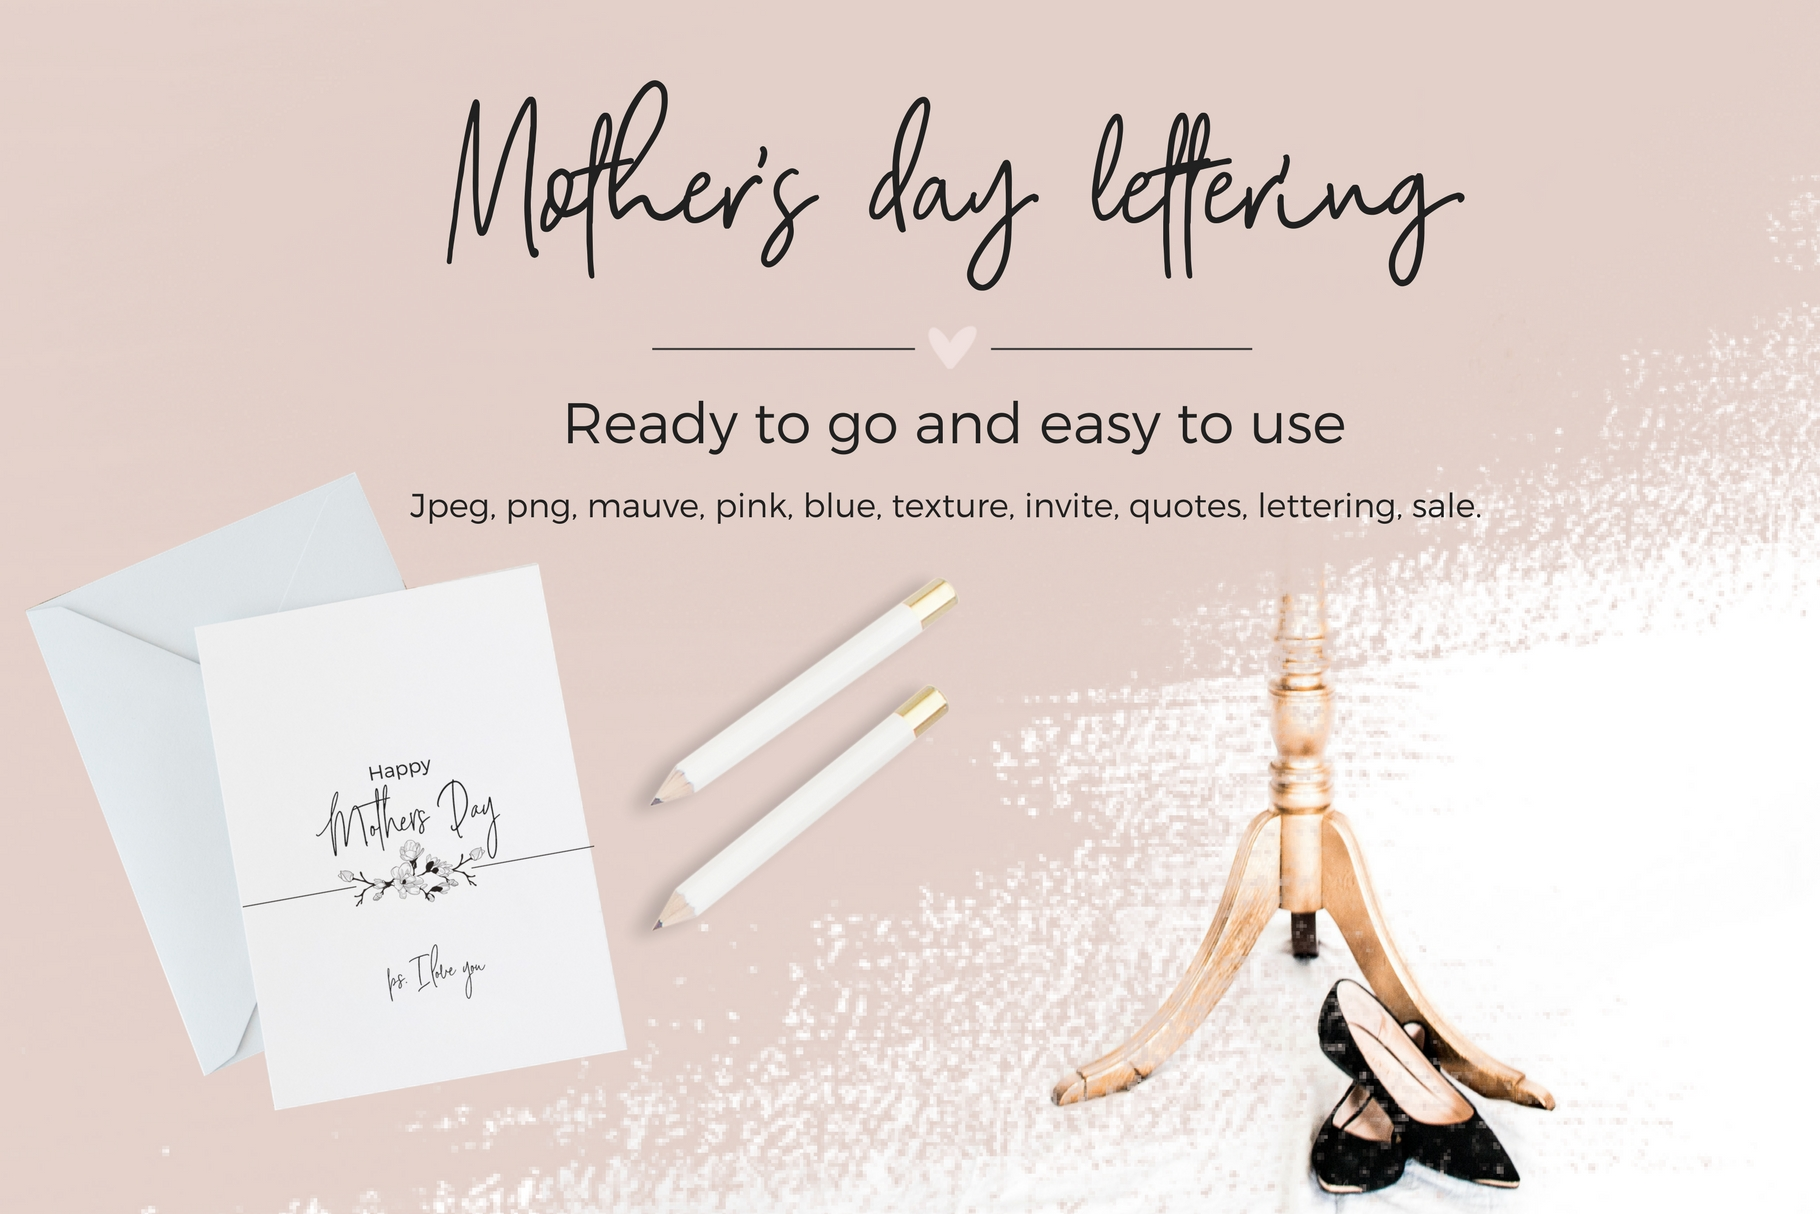 Mother's Day Lettering Gráfico Elementos de Web Por Creative Stash